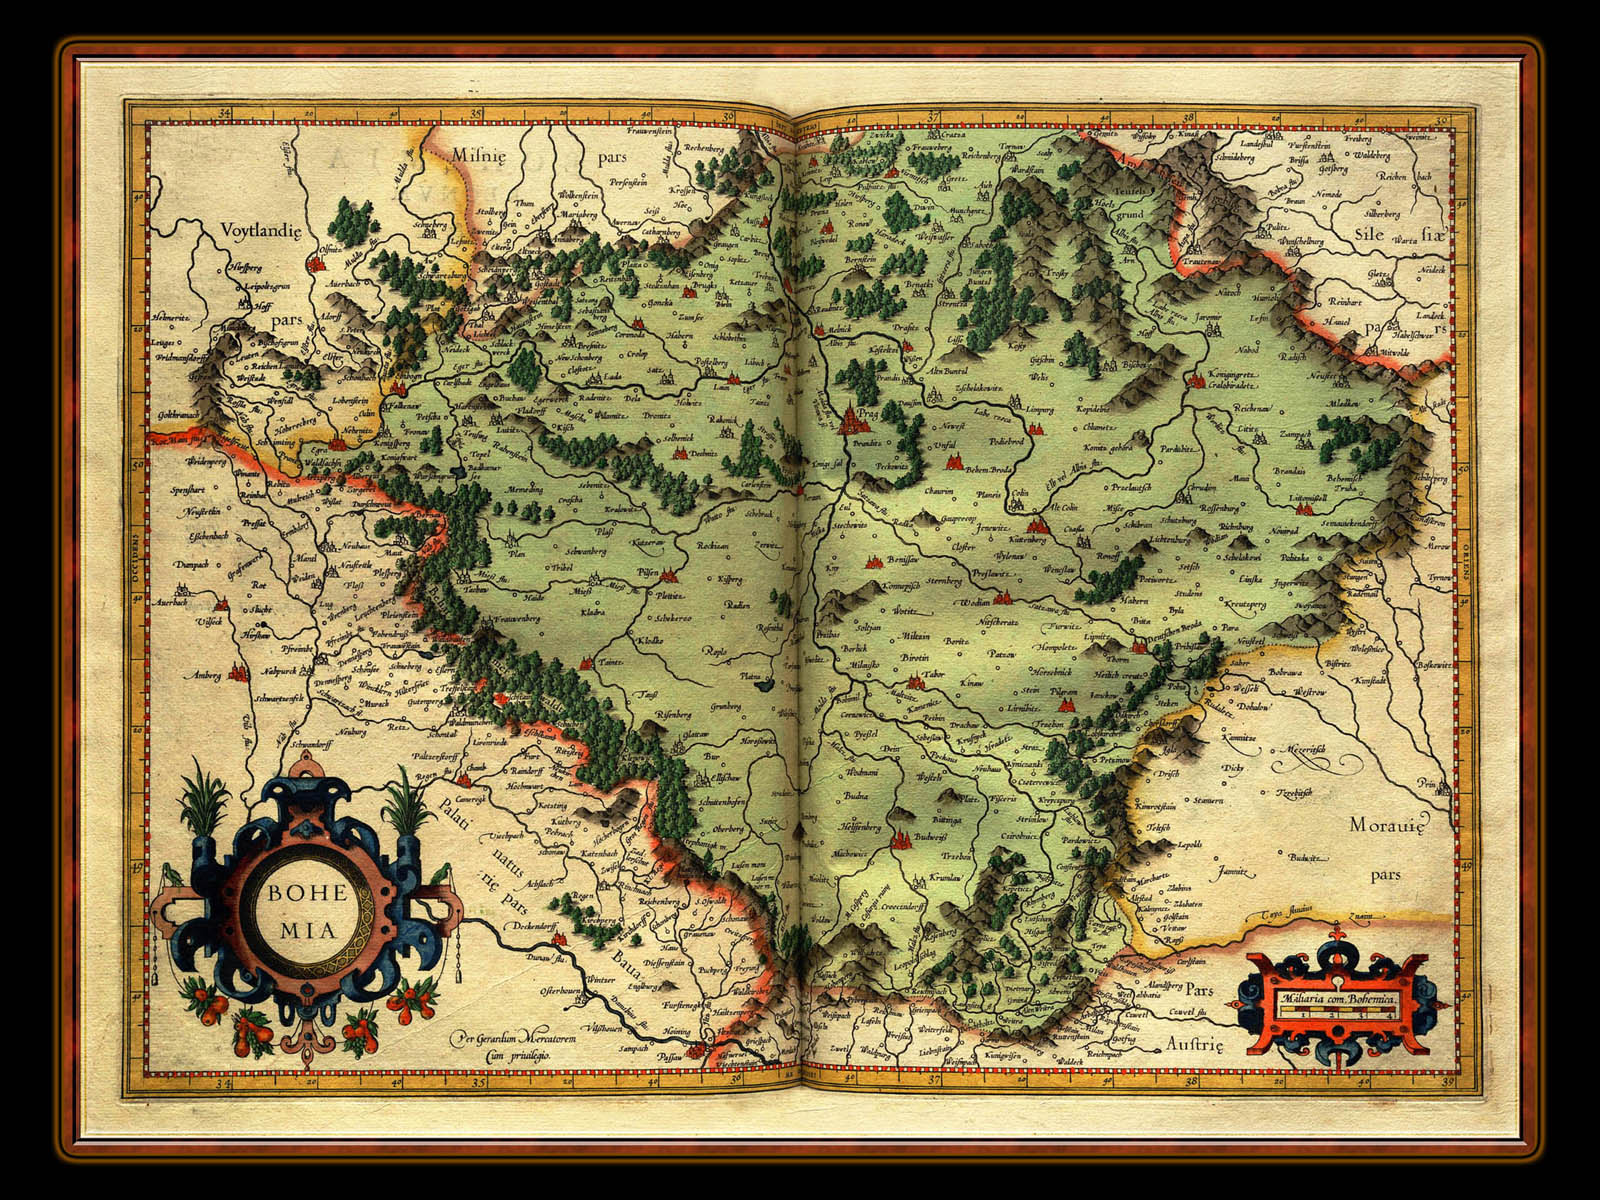 """Gerhard Mercator 1595 World Atlas - Cosmographicae"" - Wallpaper No. 28 of 106. Right click for saving options."